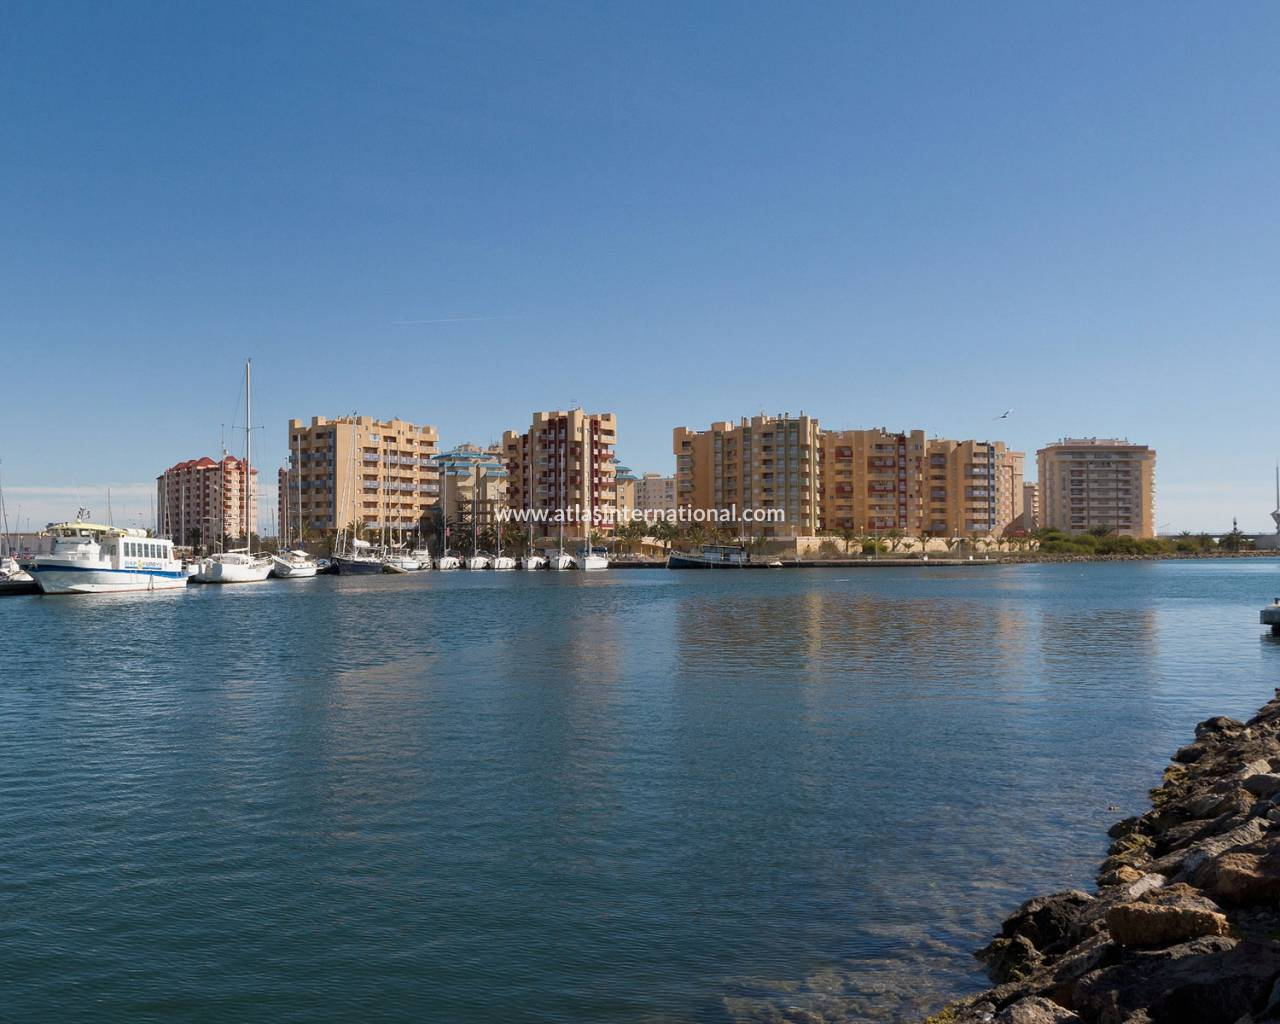 Apartment - New Build - La manga del mar menor - La manga del mar menor